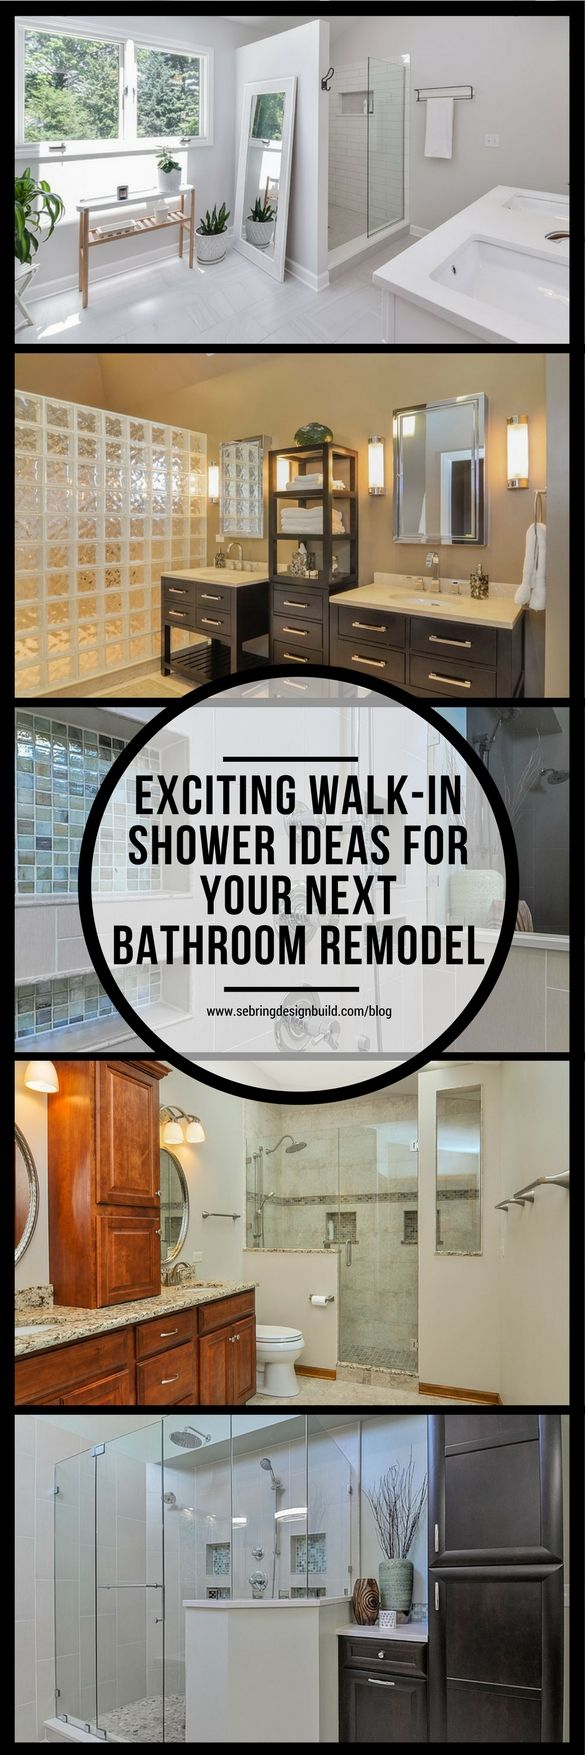 Whether your bathroom is big or small, it can, in all likelihood, accommodate a walk-in shower. Your bathroom can go from blah to beautiful with some careful planning and design, increasing both the value of your home and your enjoyment of the space. The first and possibly most important step before making remodeling your bathroom is to gain insight on what size and style of walk-in shower your space will allow.